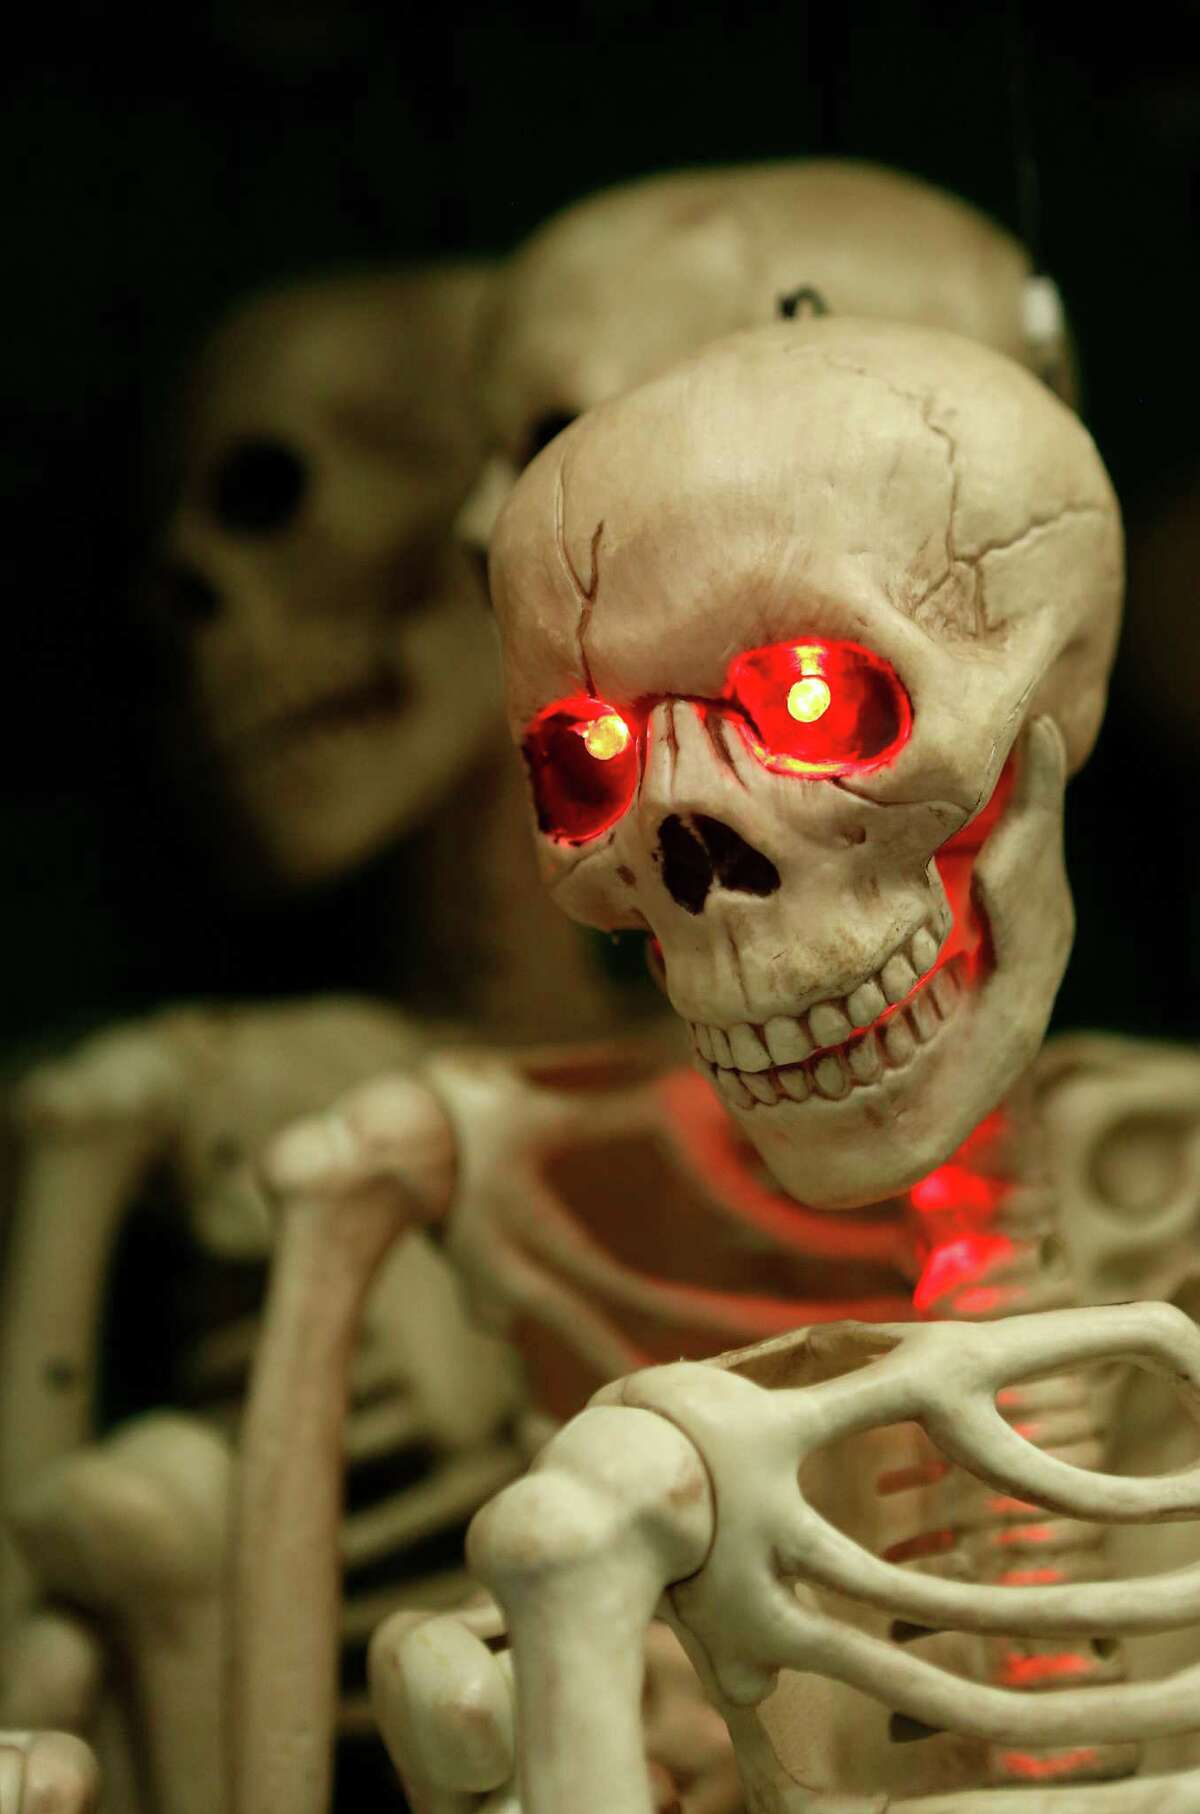 A skeleton's eyes light up at Party Boy, a costume and party supply store that contains everything from decorations to costume rentals to an onsite haunted house, Tuesday, Oct. 20, 2015, in Houston. ( Mark Mulligan / Houston Chronicle )